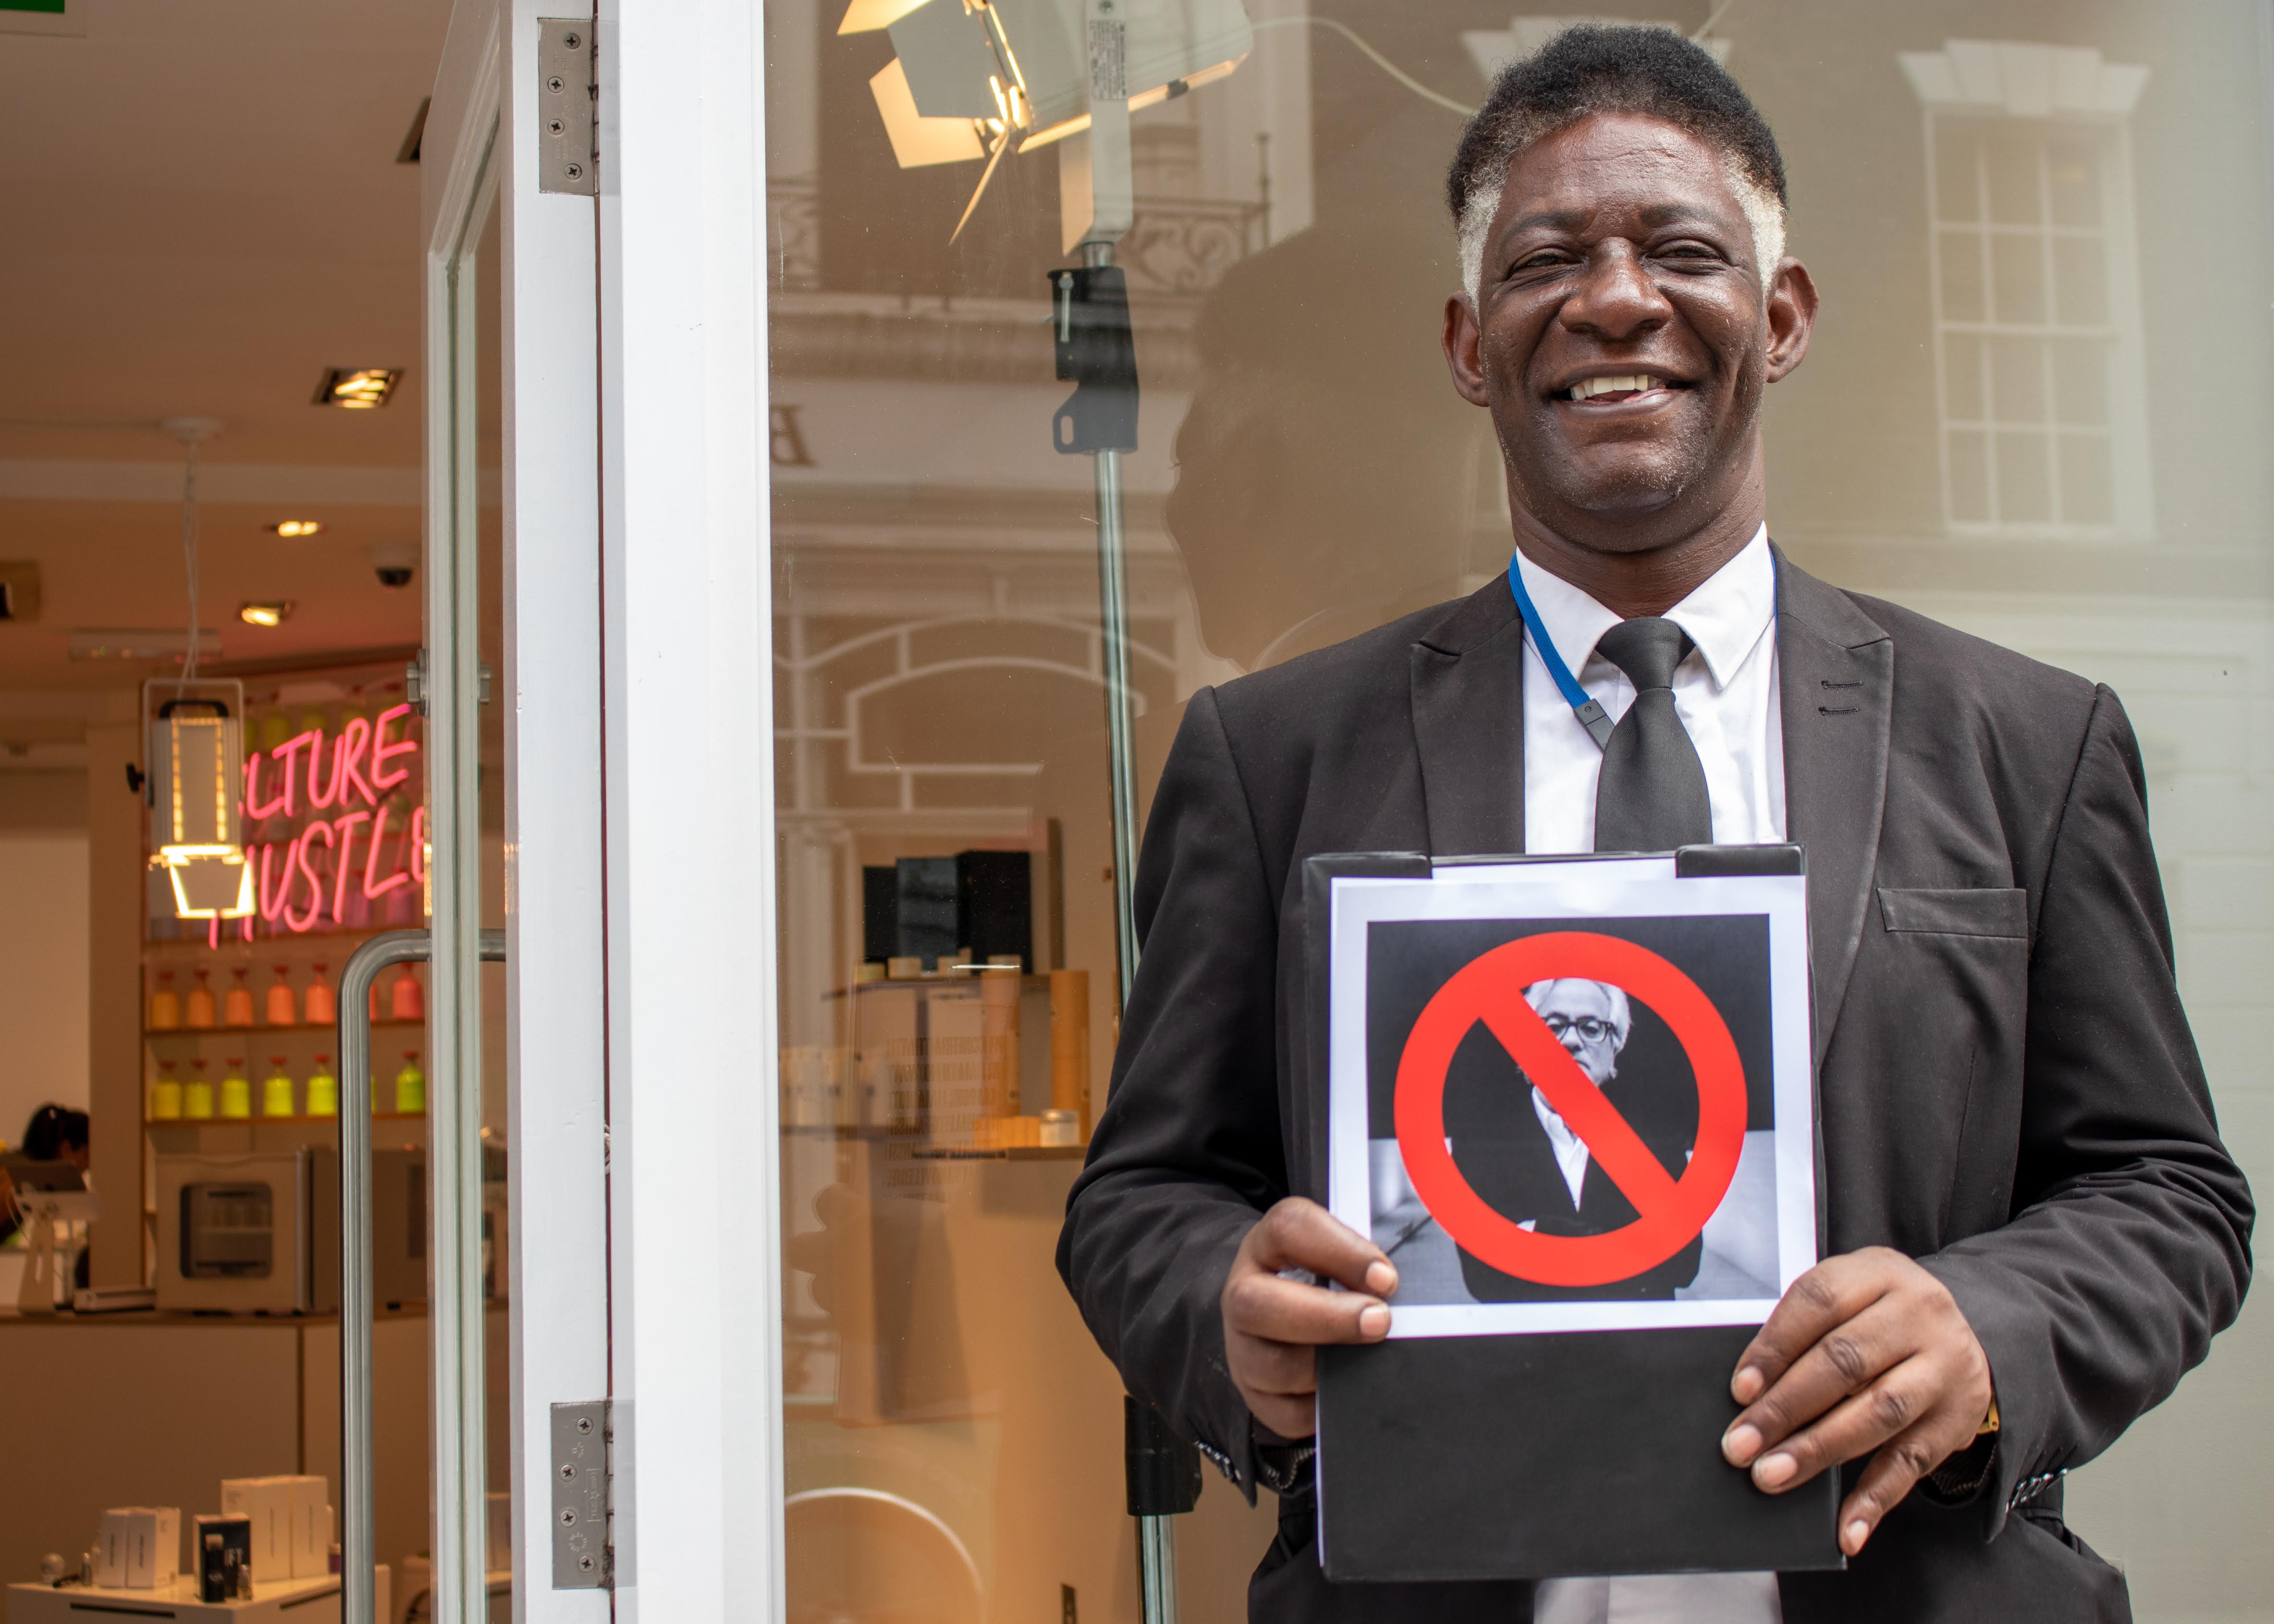 World renowned artist Anish Kapoor banned from Mayfair 'ArtShop' in ongoing feud. - FAD Magazine